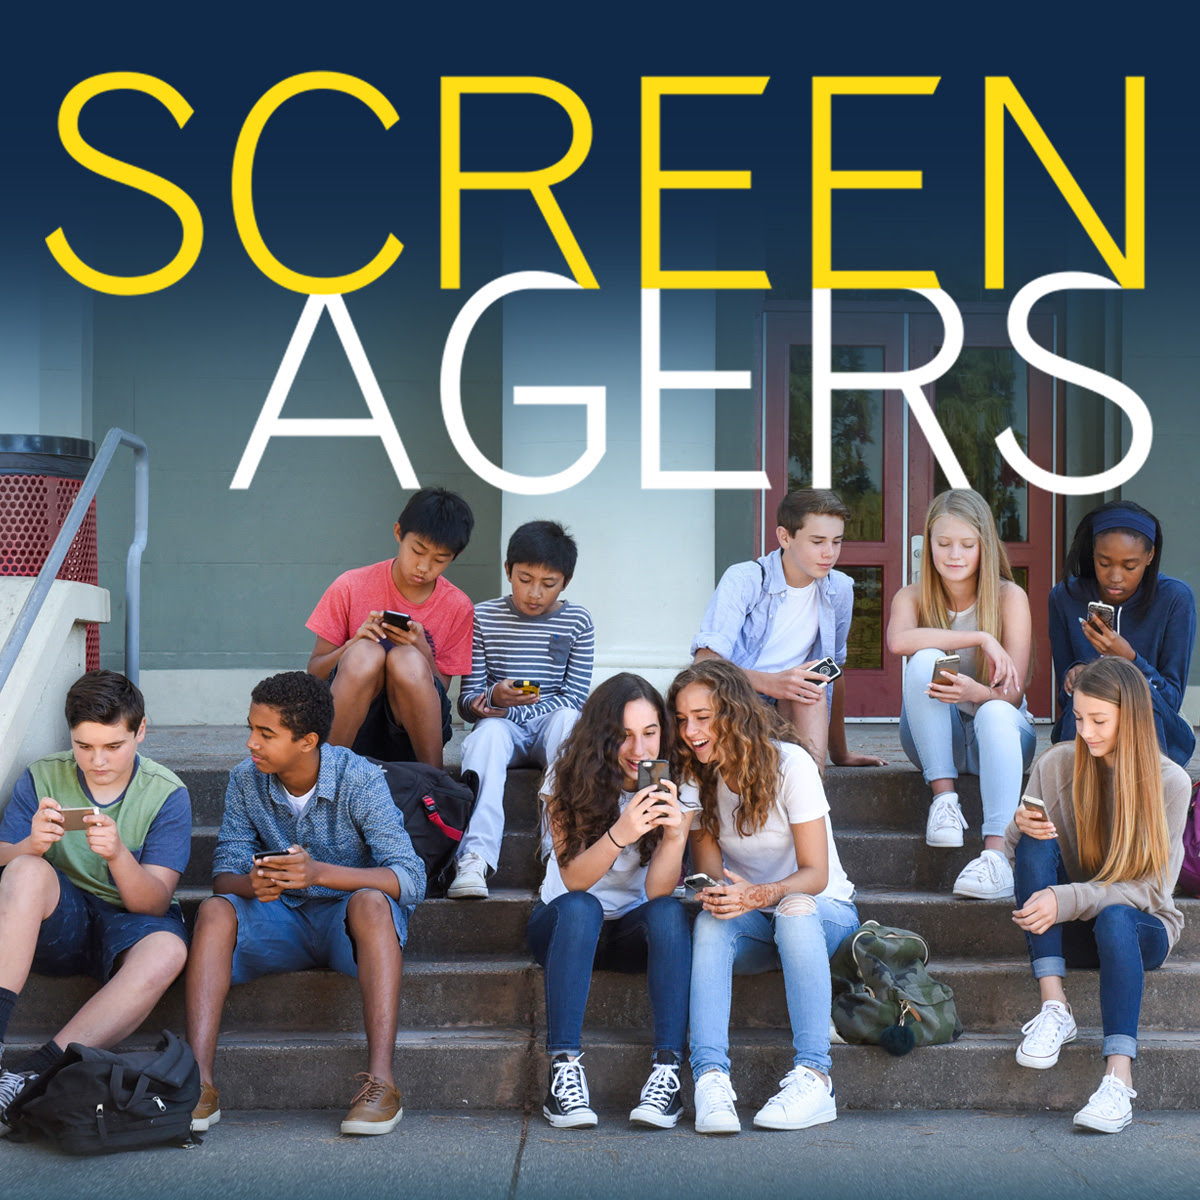 Screenagers Film Presented By Willow Creek Academy Parent Council & Staff